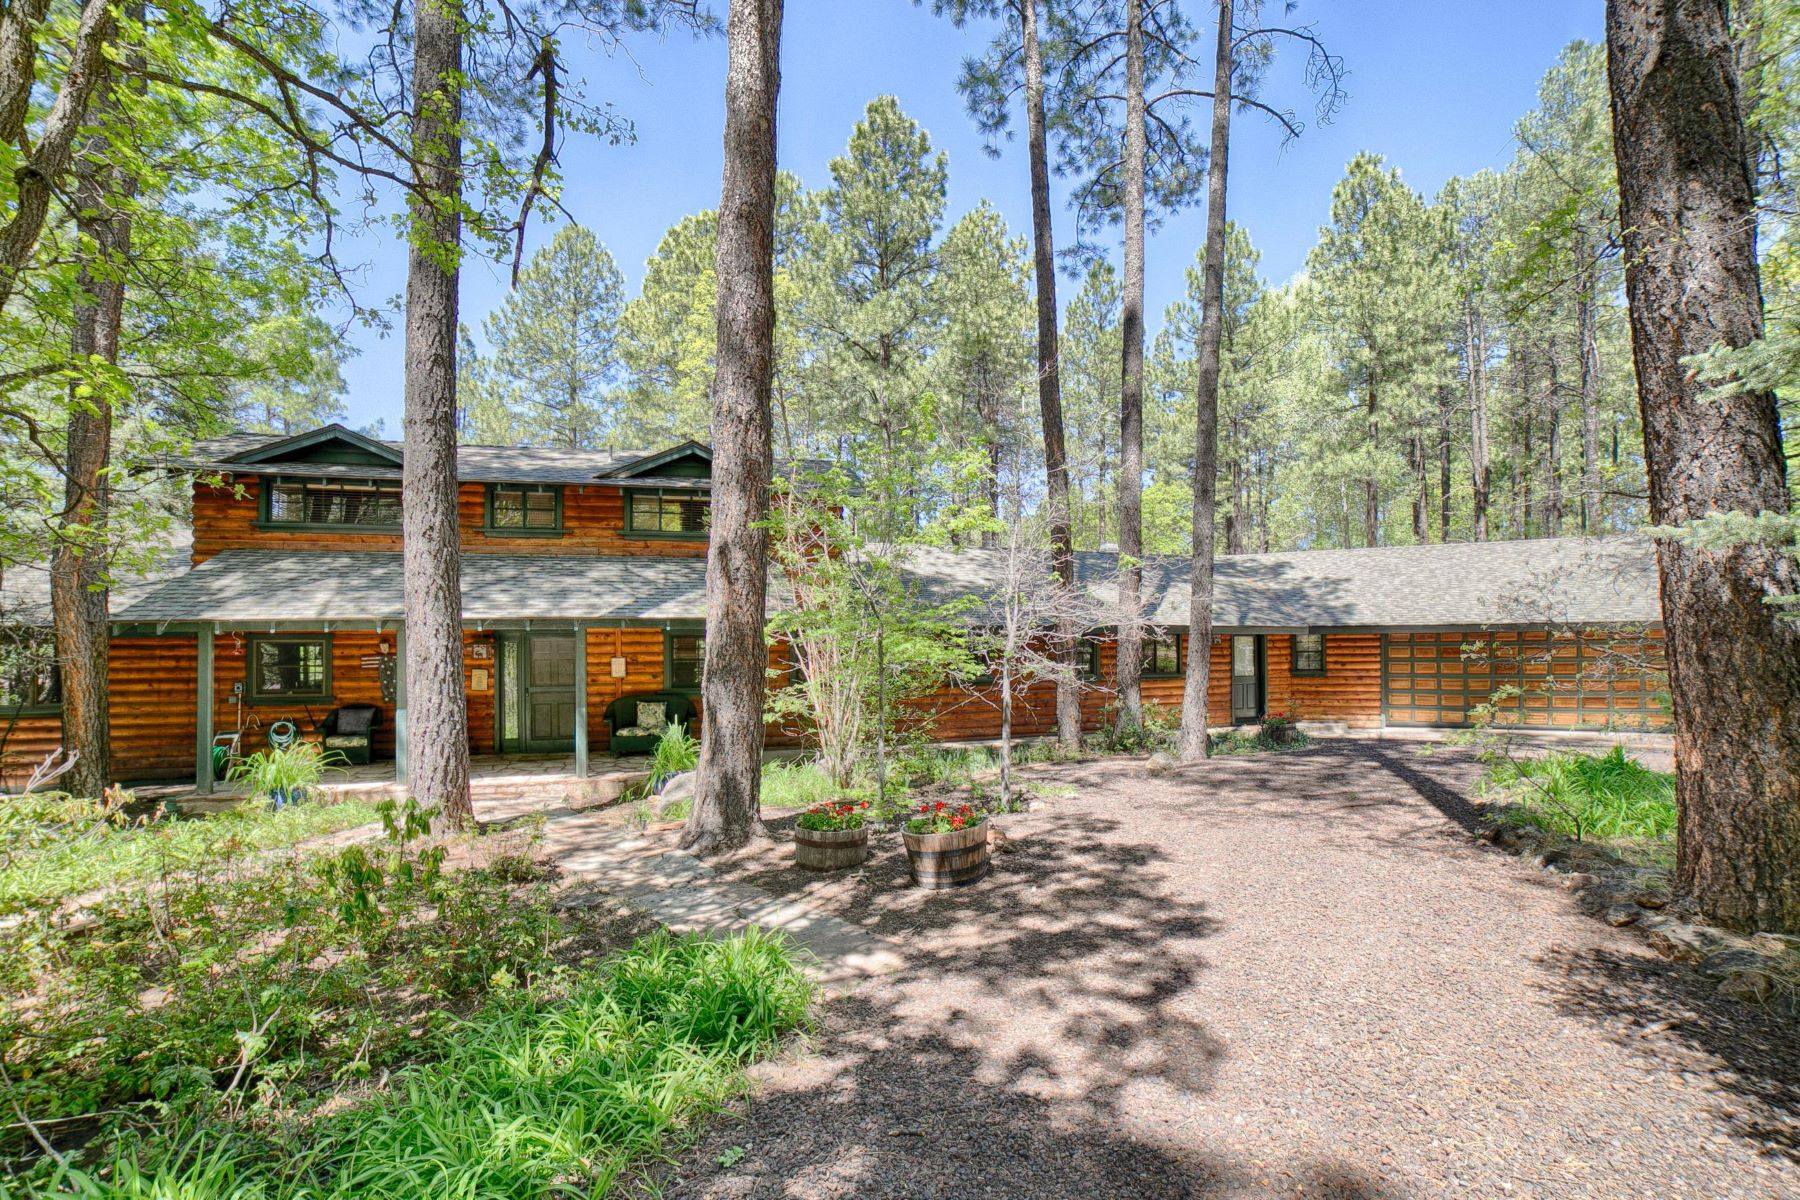 Single Family Homes for Active at Lovely White Mountain Summer Home 3416 White Oak Dr Pinetop, Arizona 85935 United States